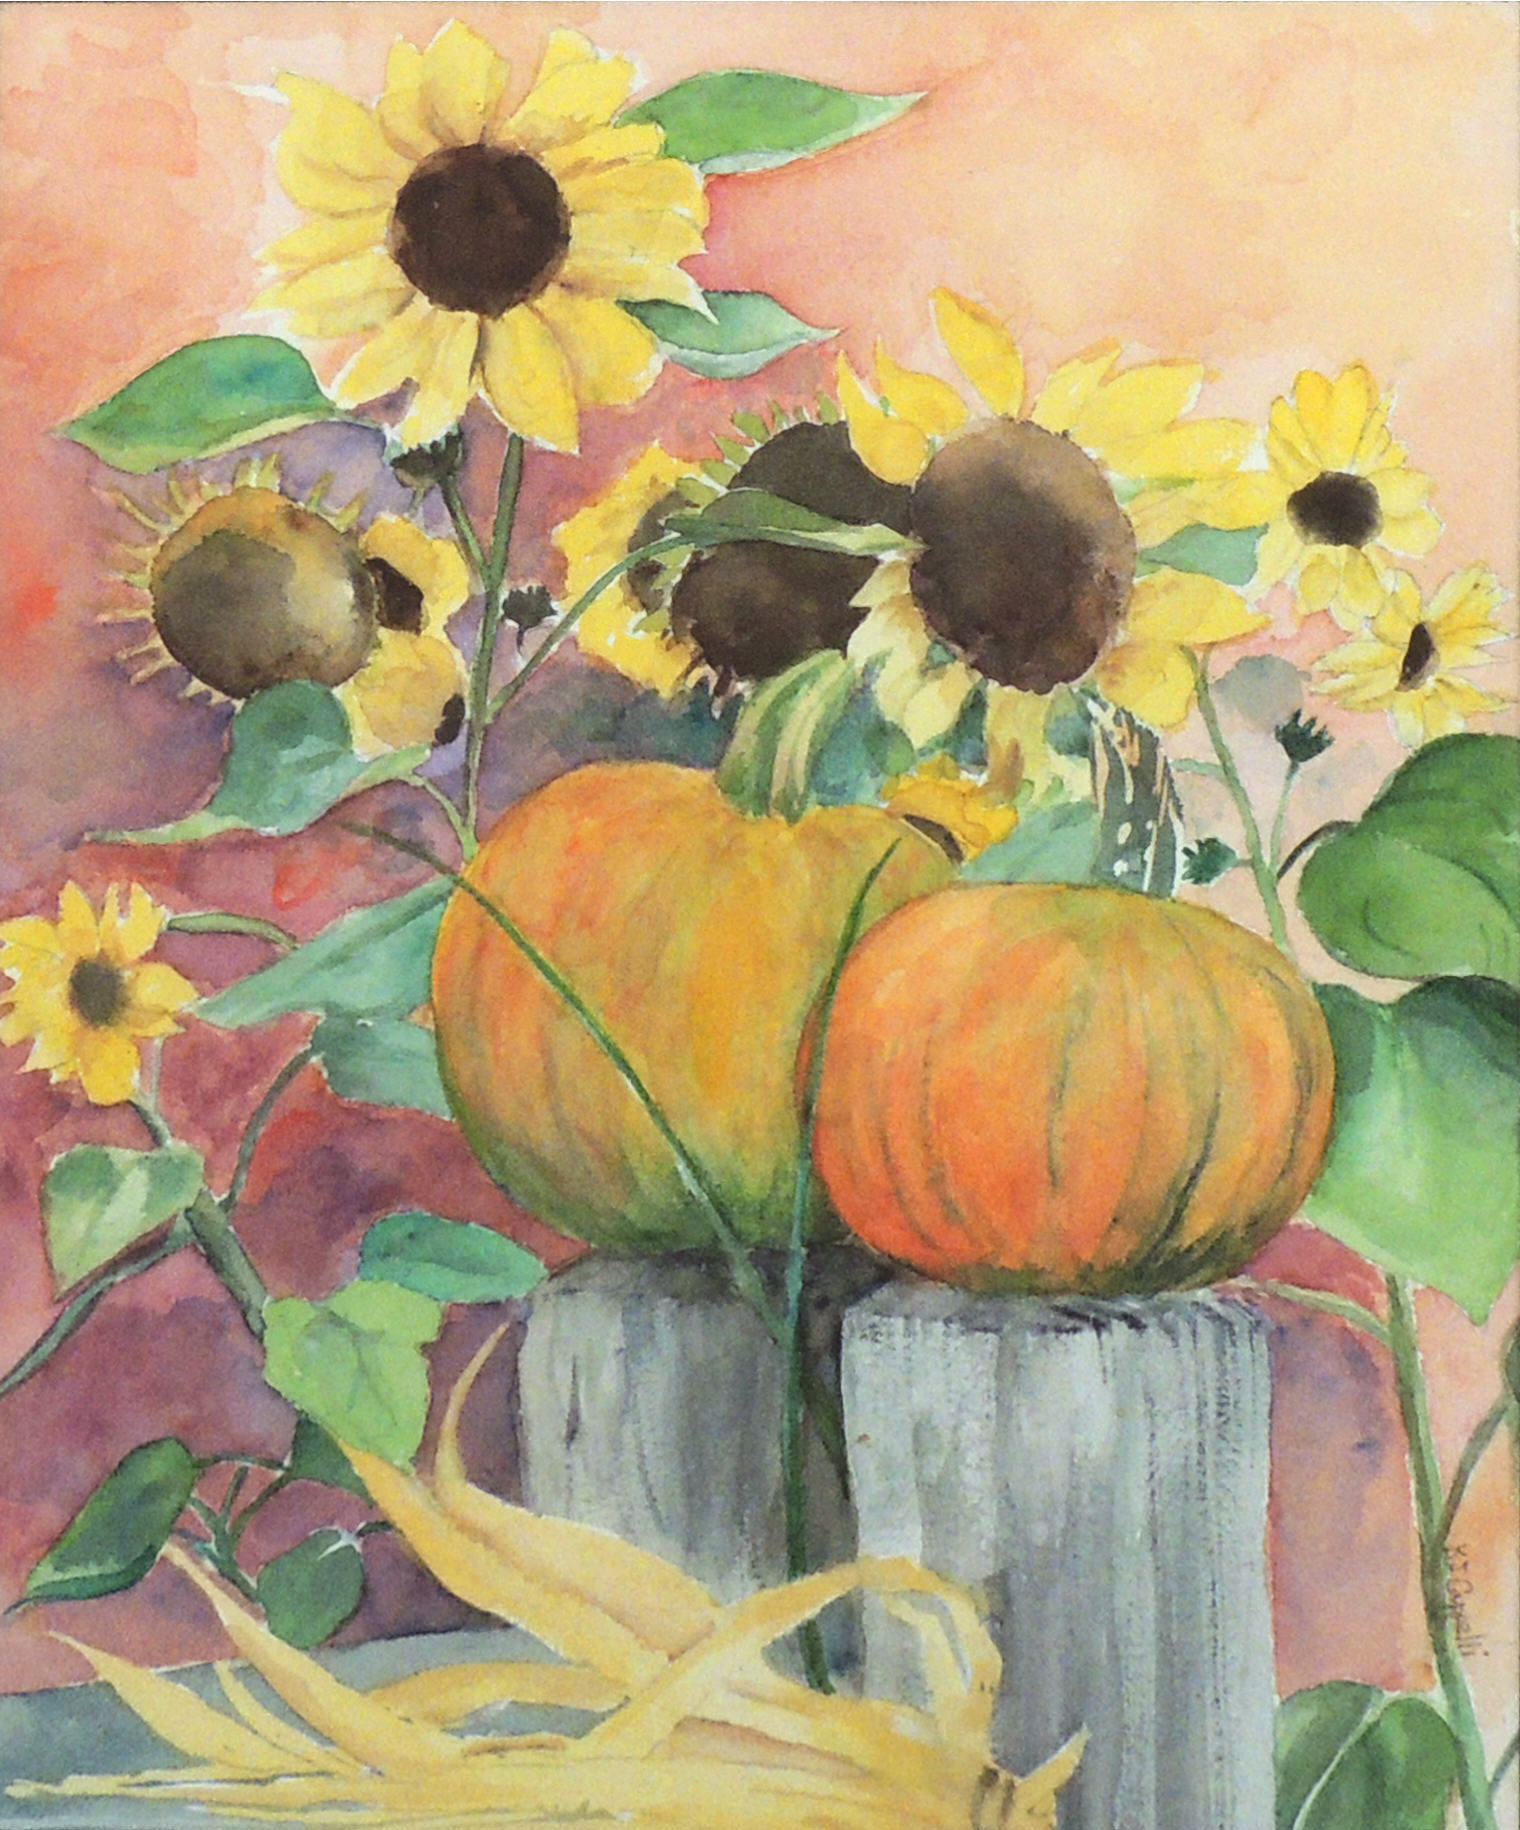 Kathleen Cappelli | SUNFLOWERS AND PUMPKINS | Watercolor